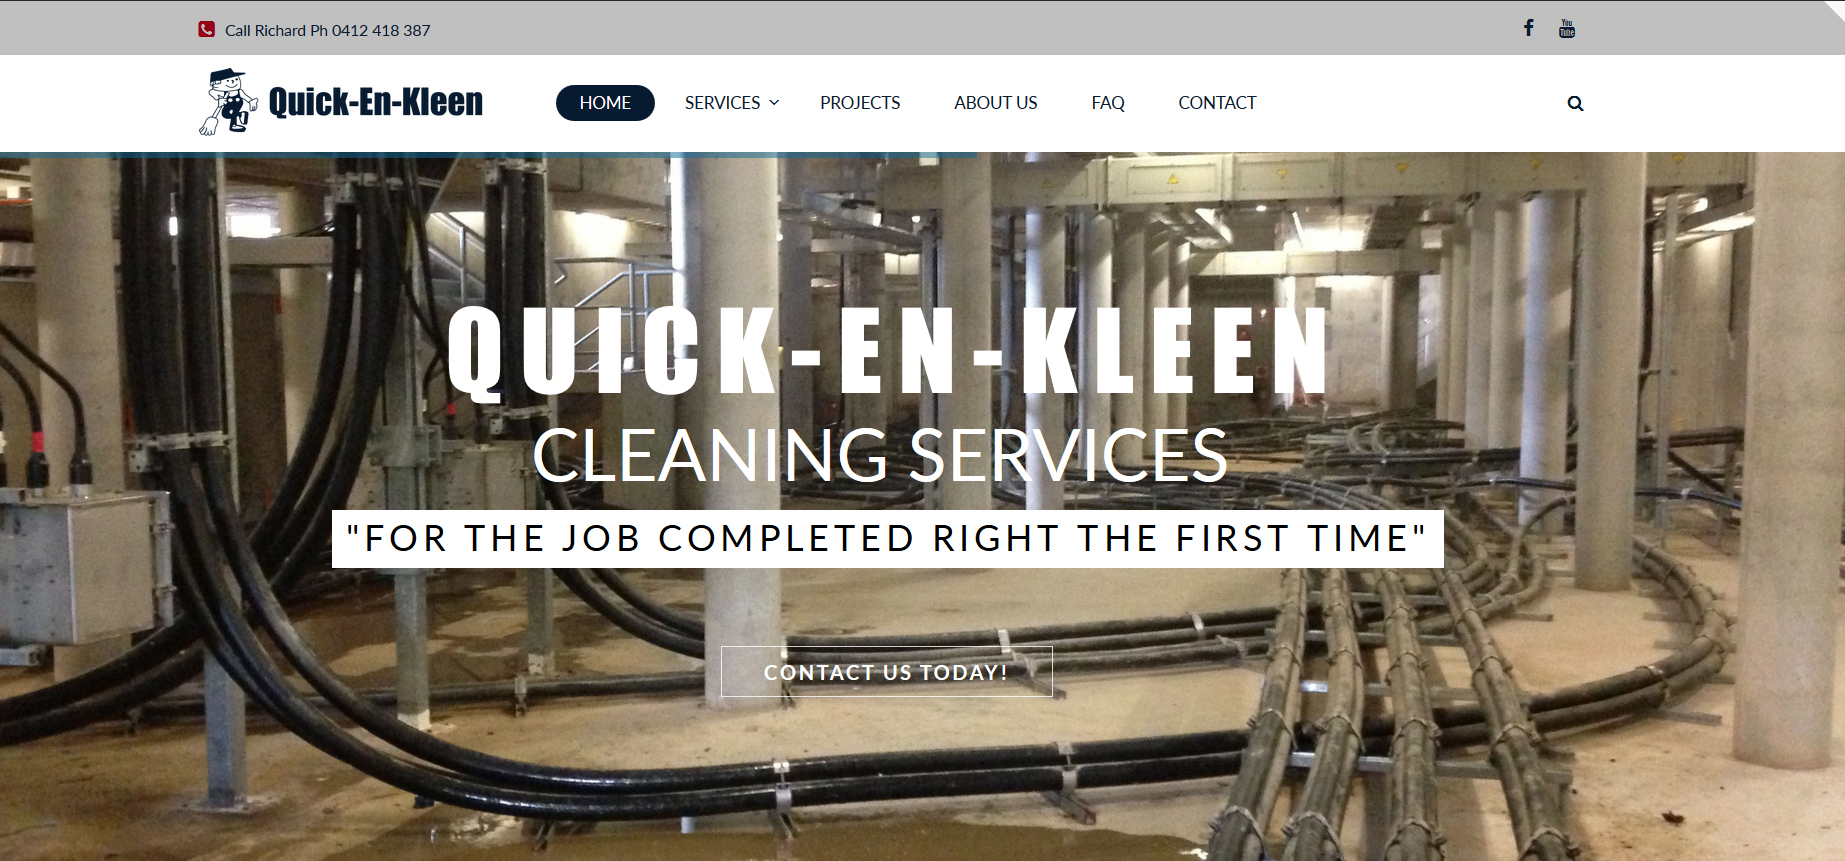 Tara Whitie latest website design for Quick-En-Kleen